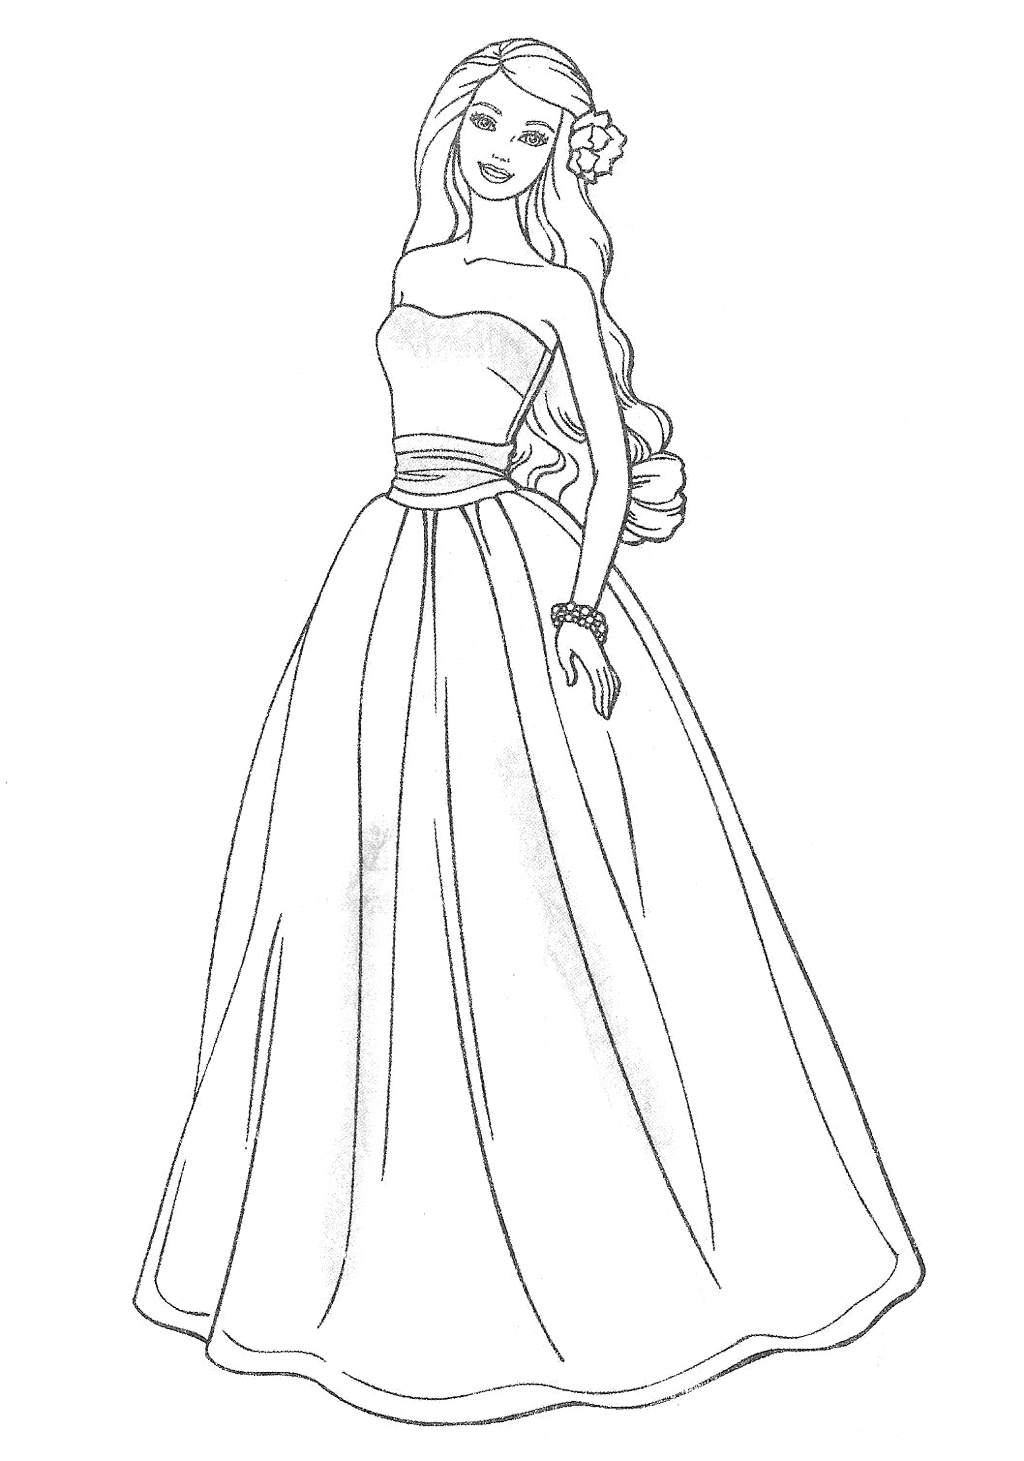 1024x1461 Delighted Coloring Page Of A Dress Last Chance Barbie For Girls